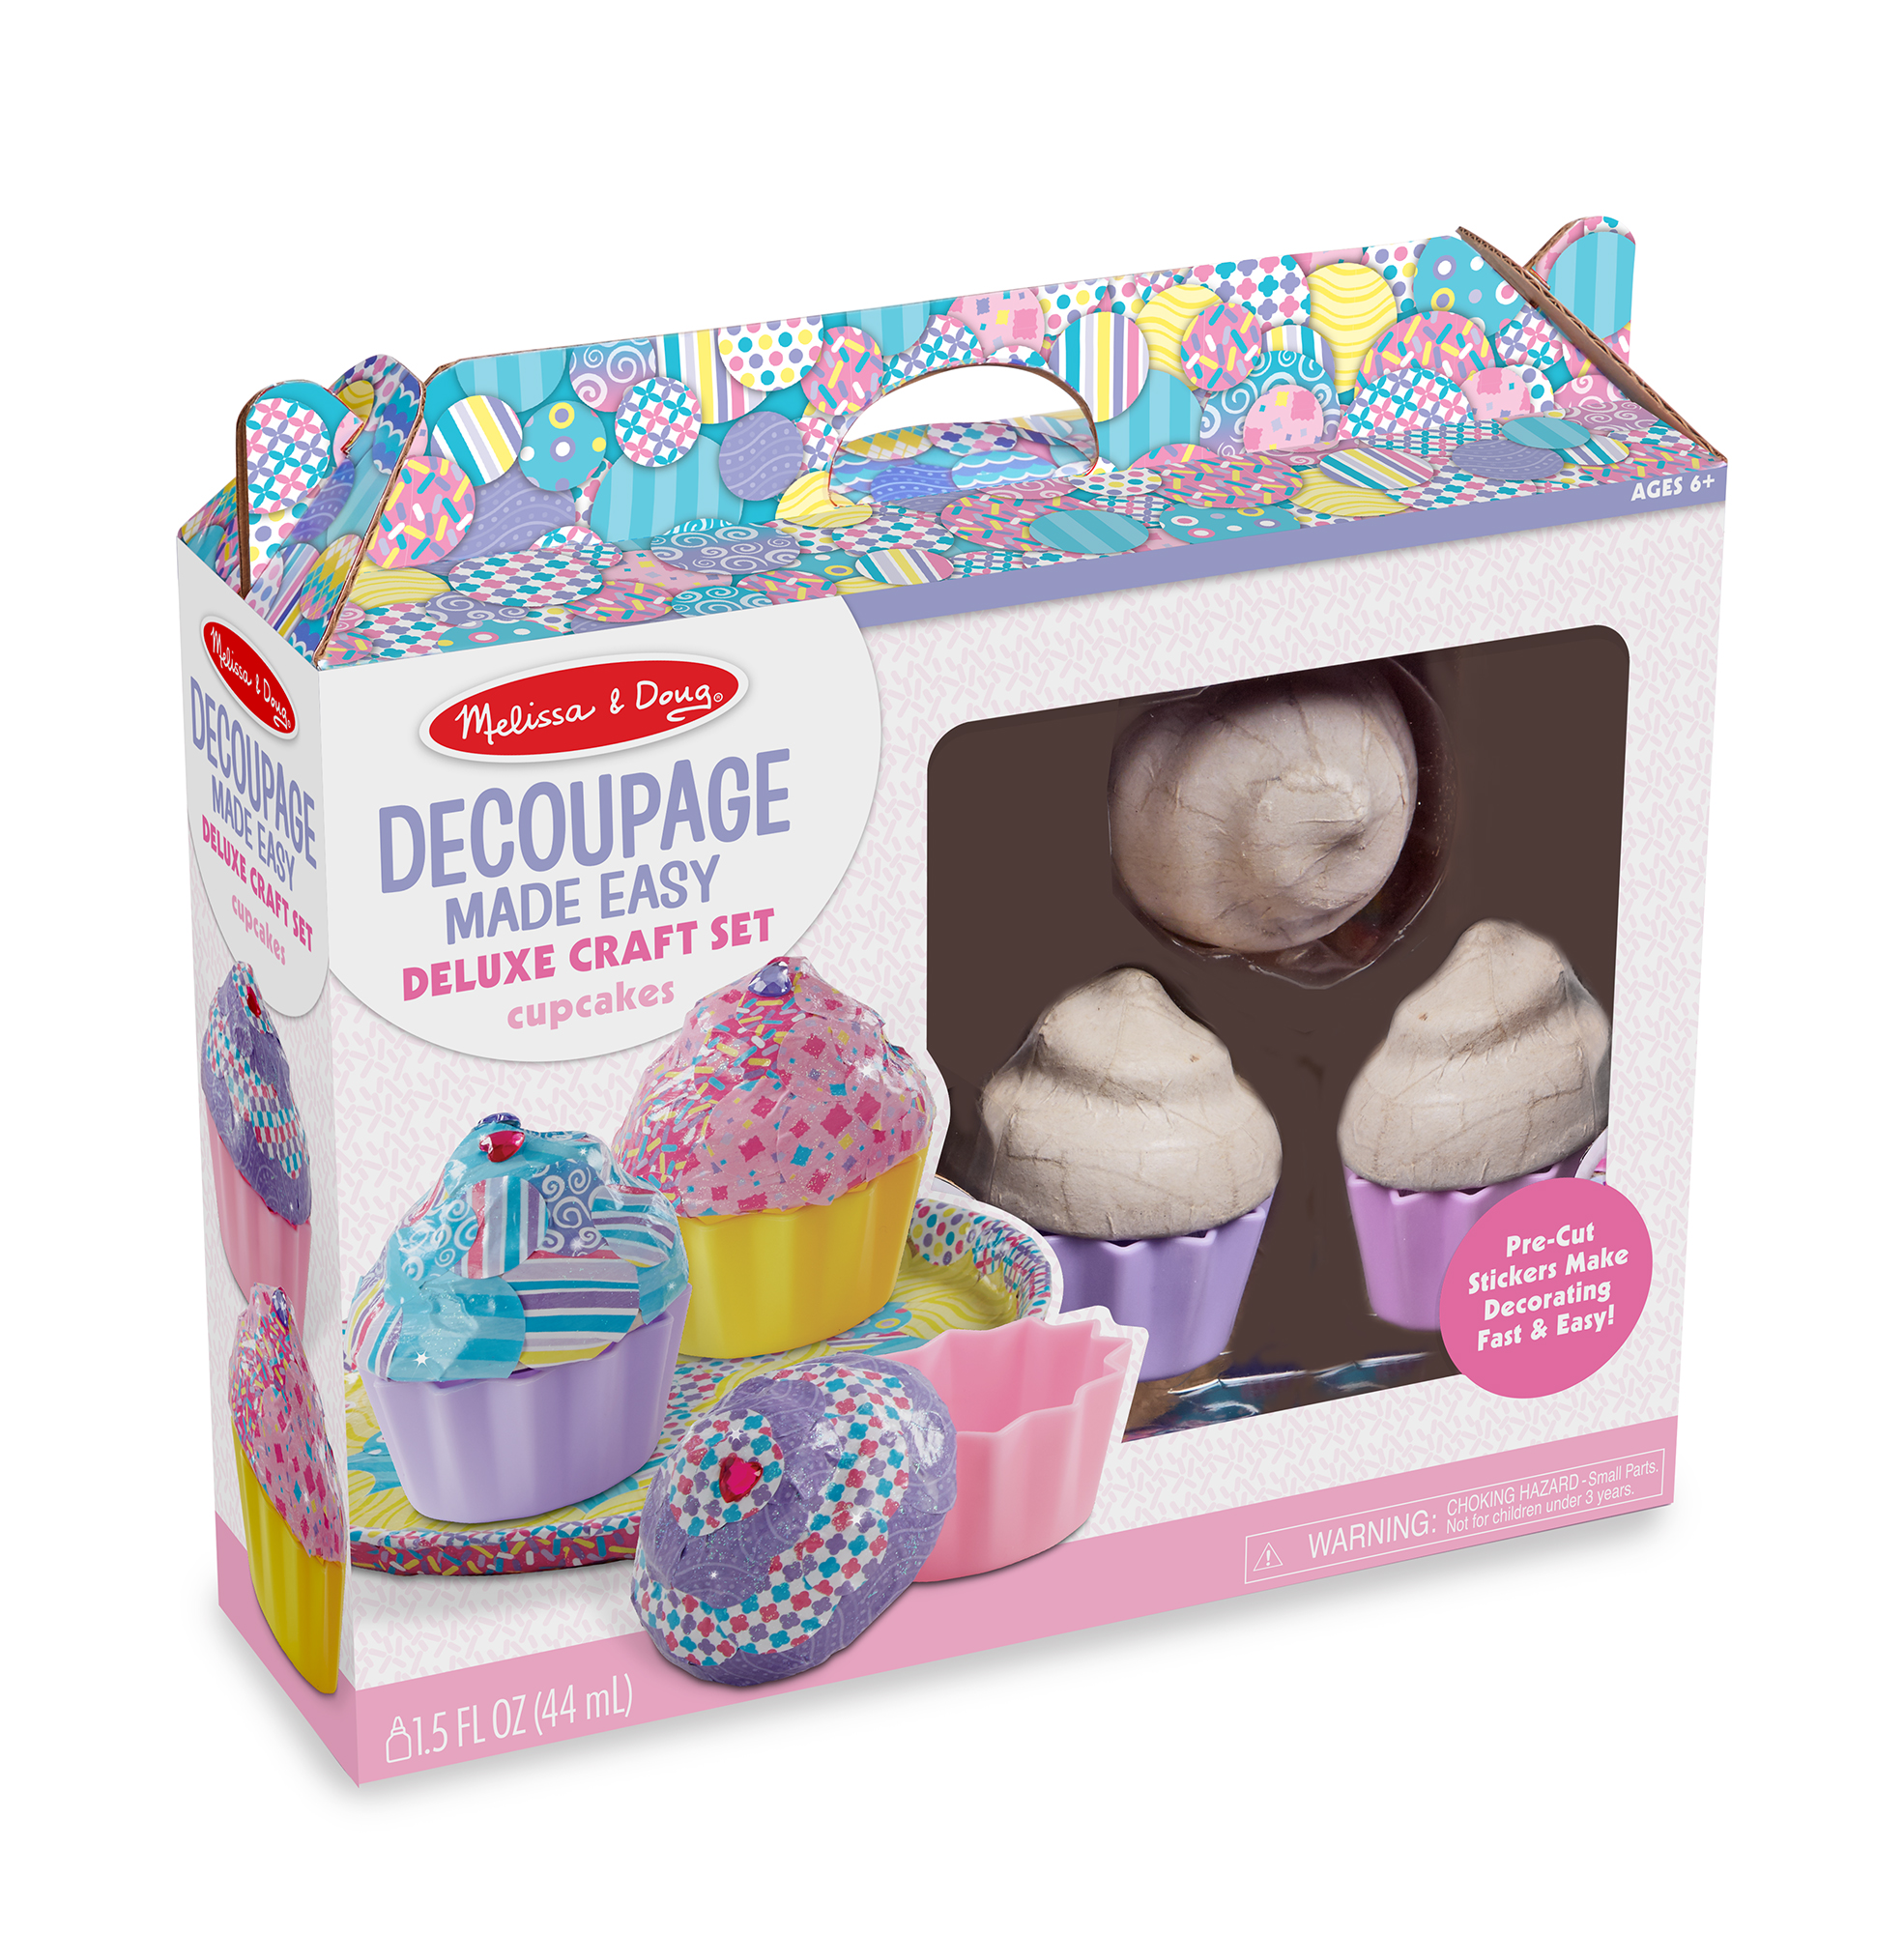 Cupcake Boxes Kmart Melissa And Doug Decoupage Made Easy Deluxe Craft Set Cupcakes